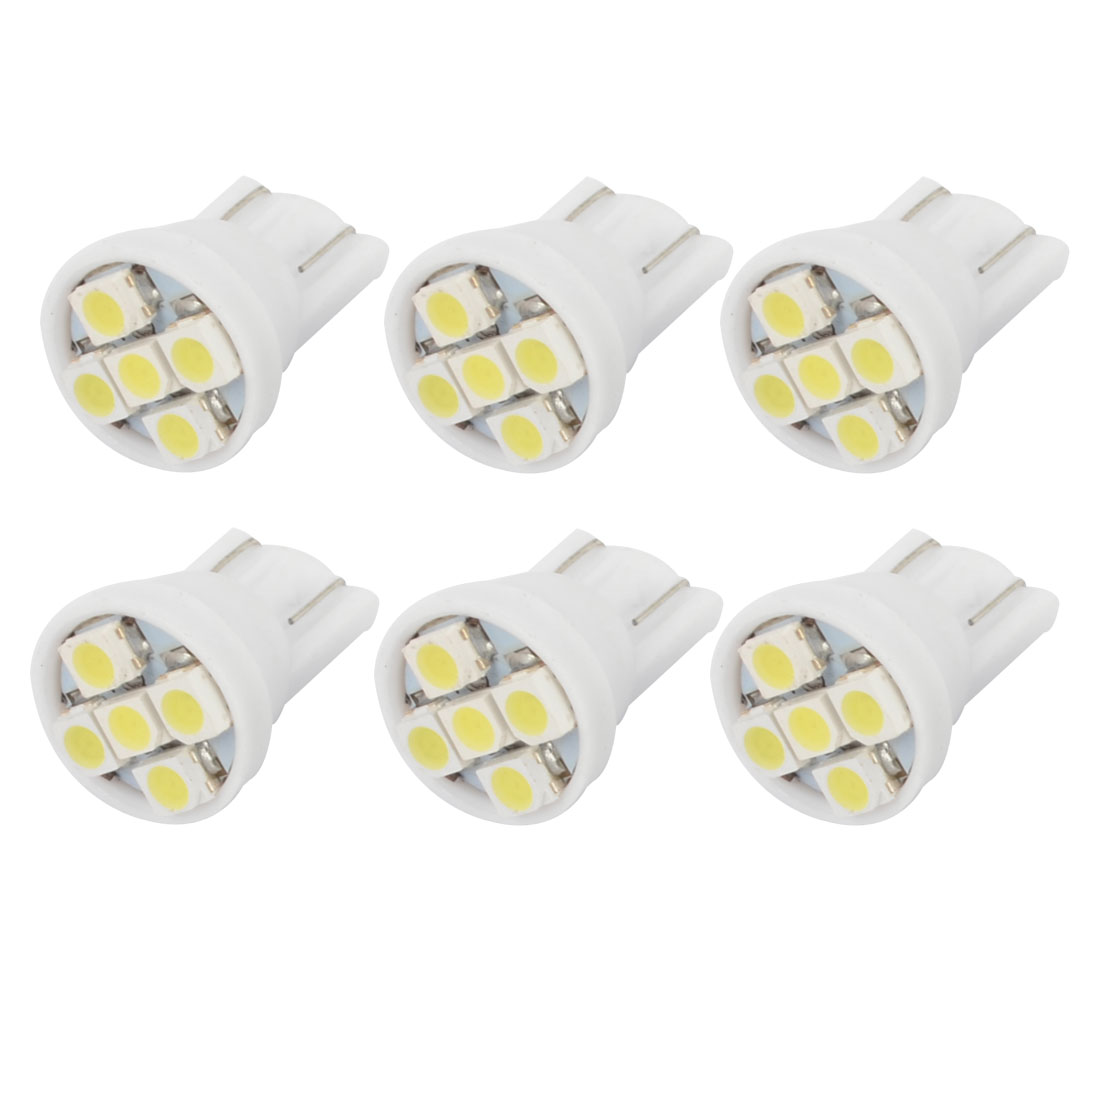 Internal White T10 W5W 1210 SMD 5 LEDs Instrument Bulbs Wedge Light Lamp 6PCS